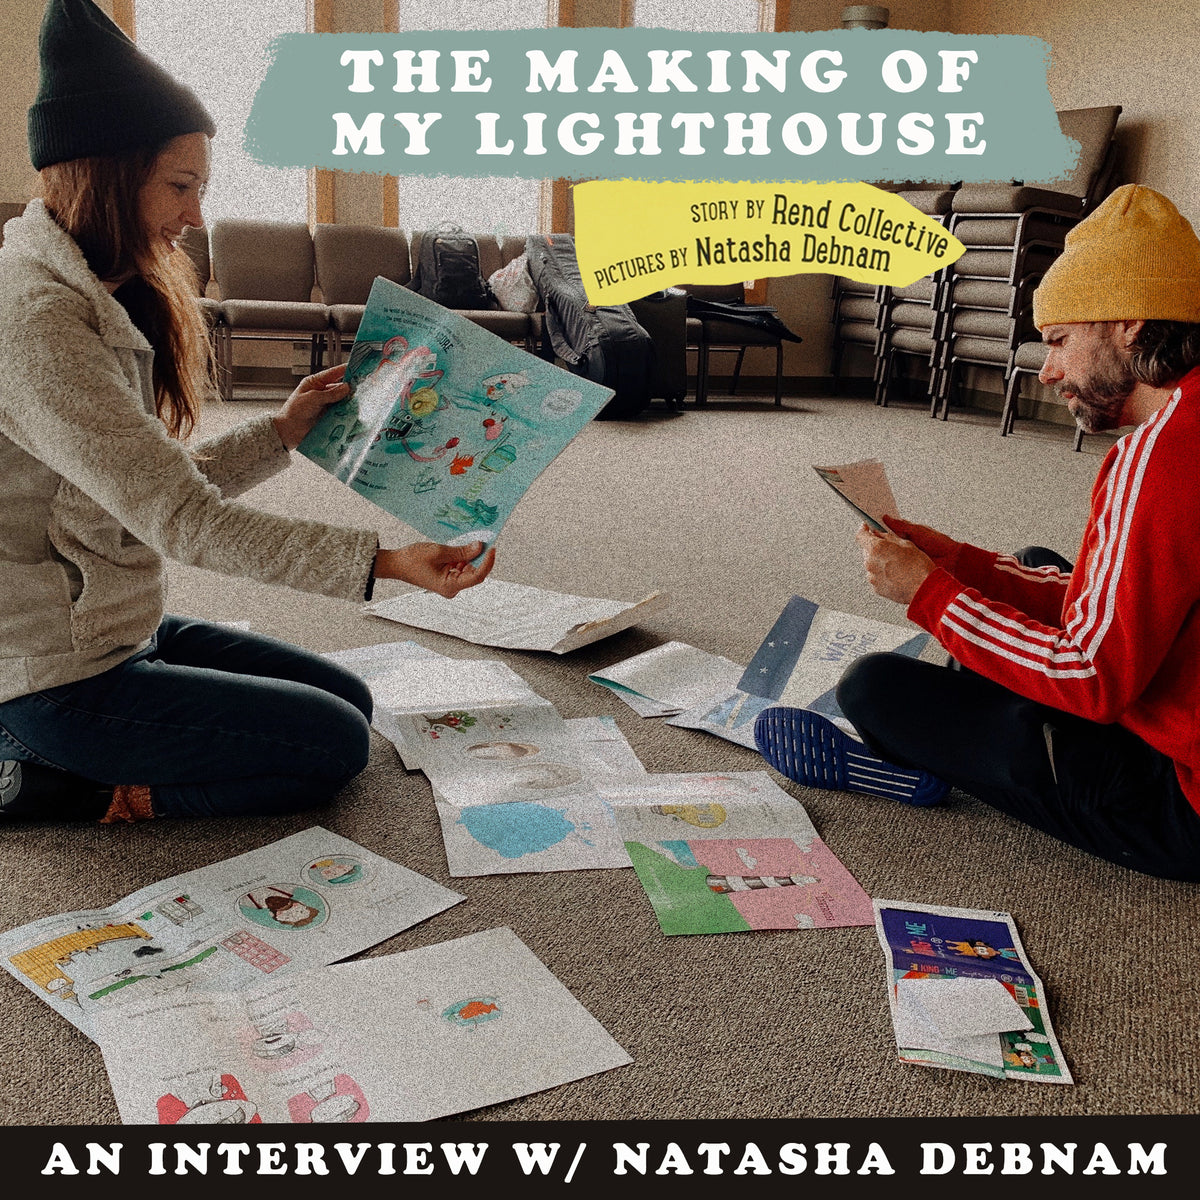 An Interview with Natasha Debnam (Illustrator of My Lighthouse book)